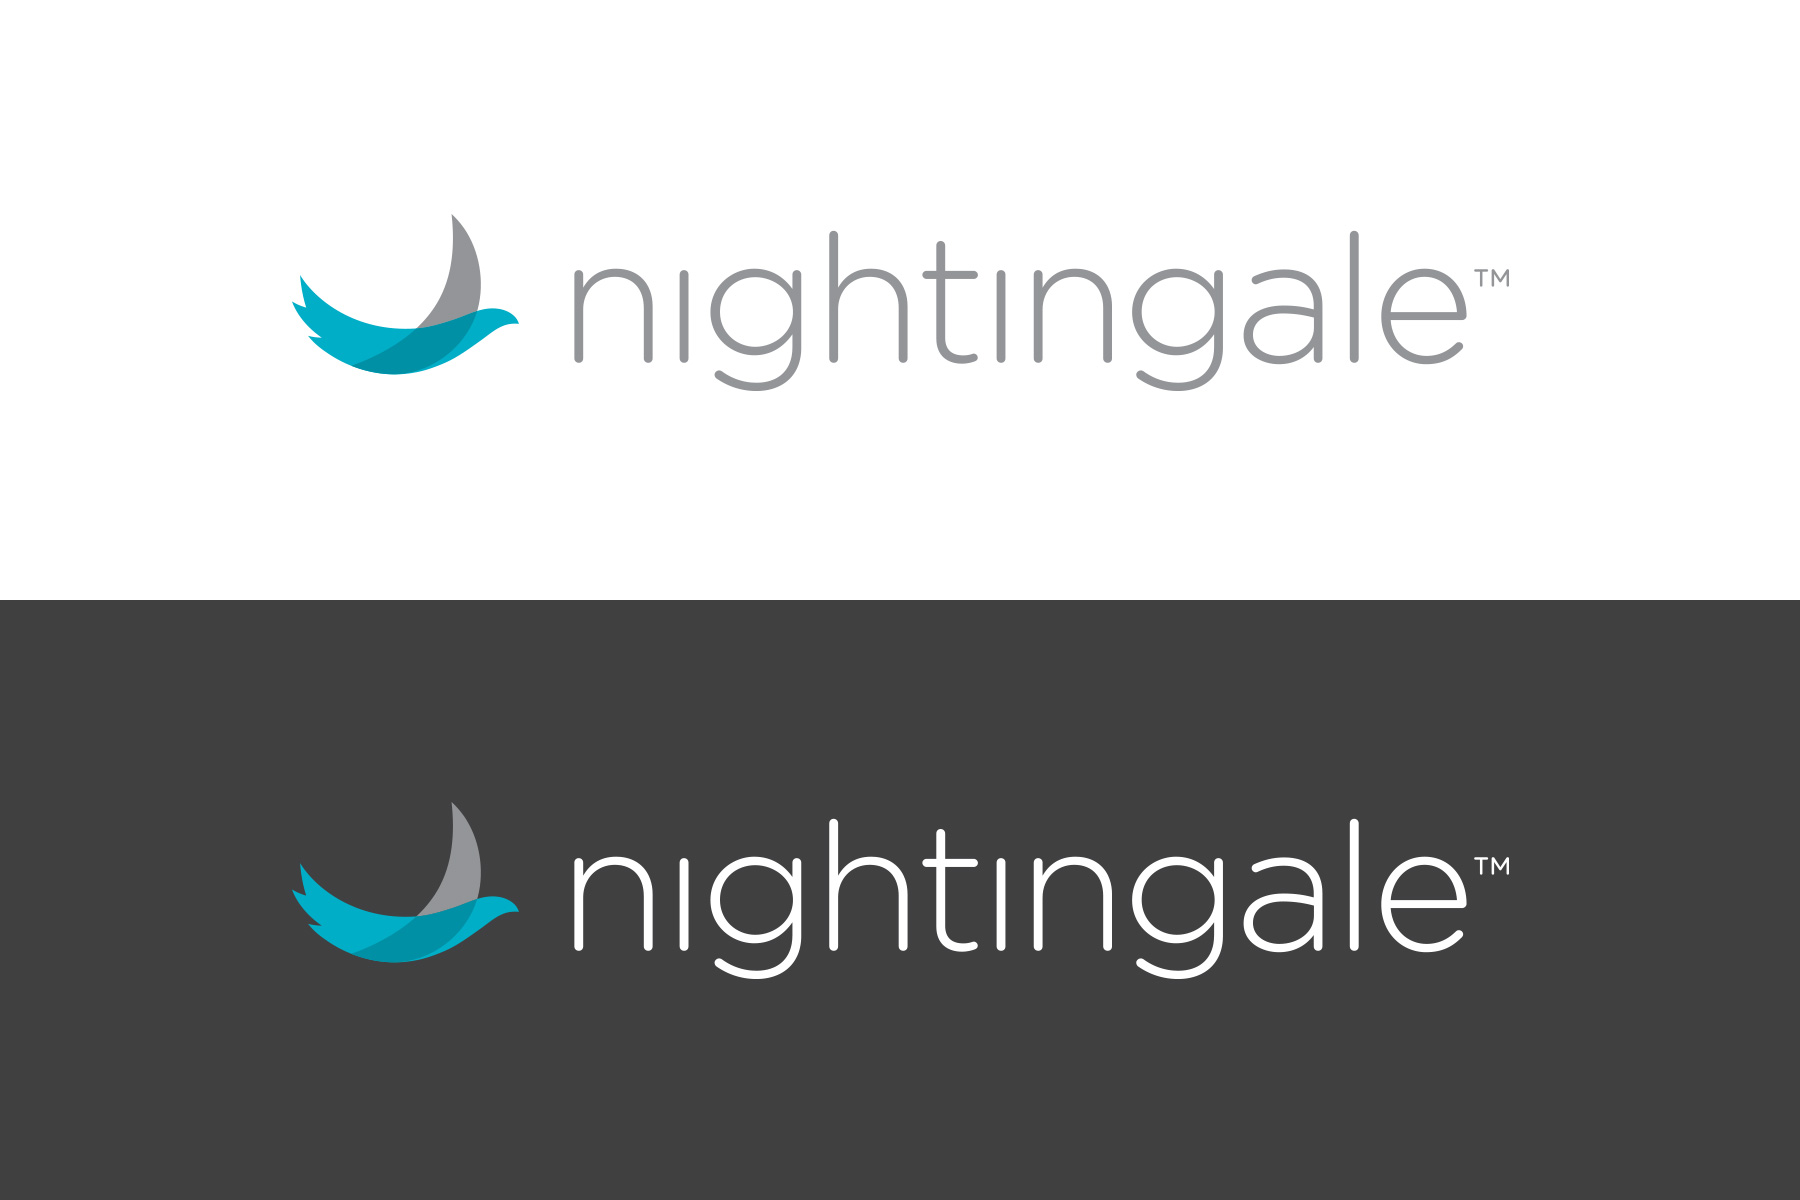 Nightingale Logos